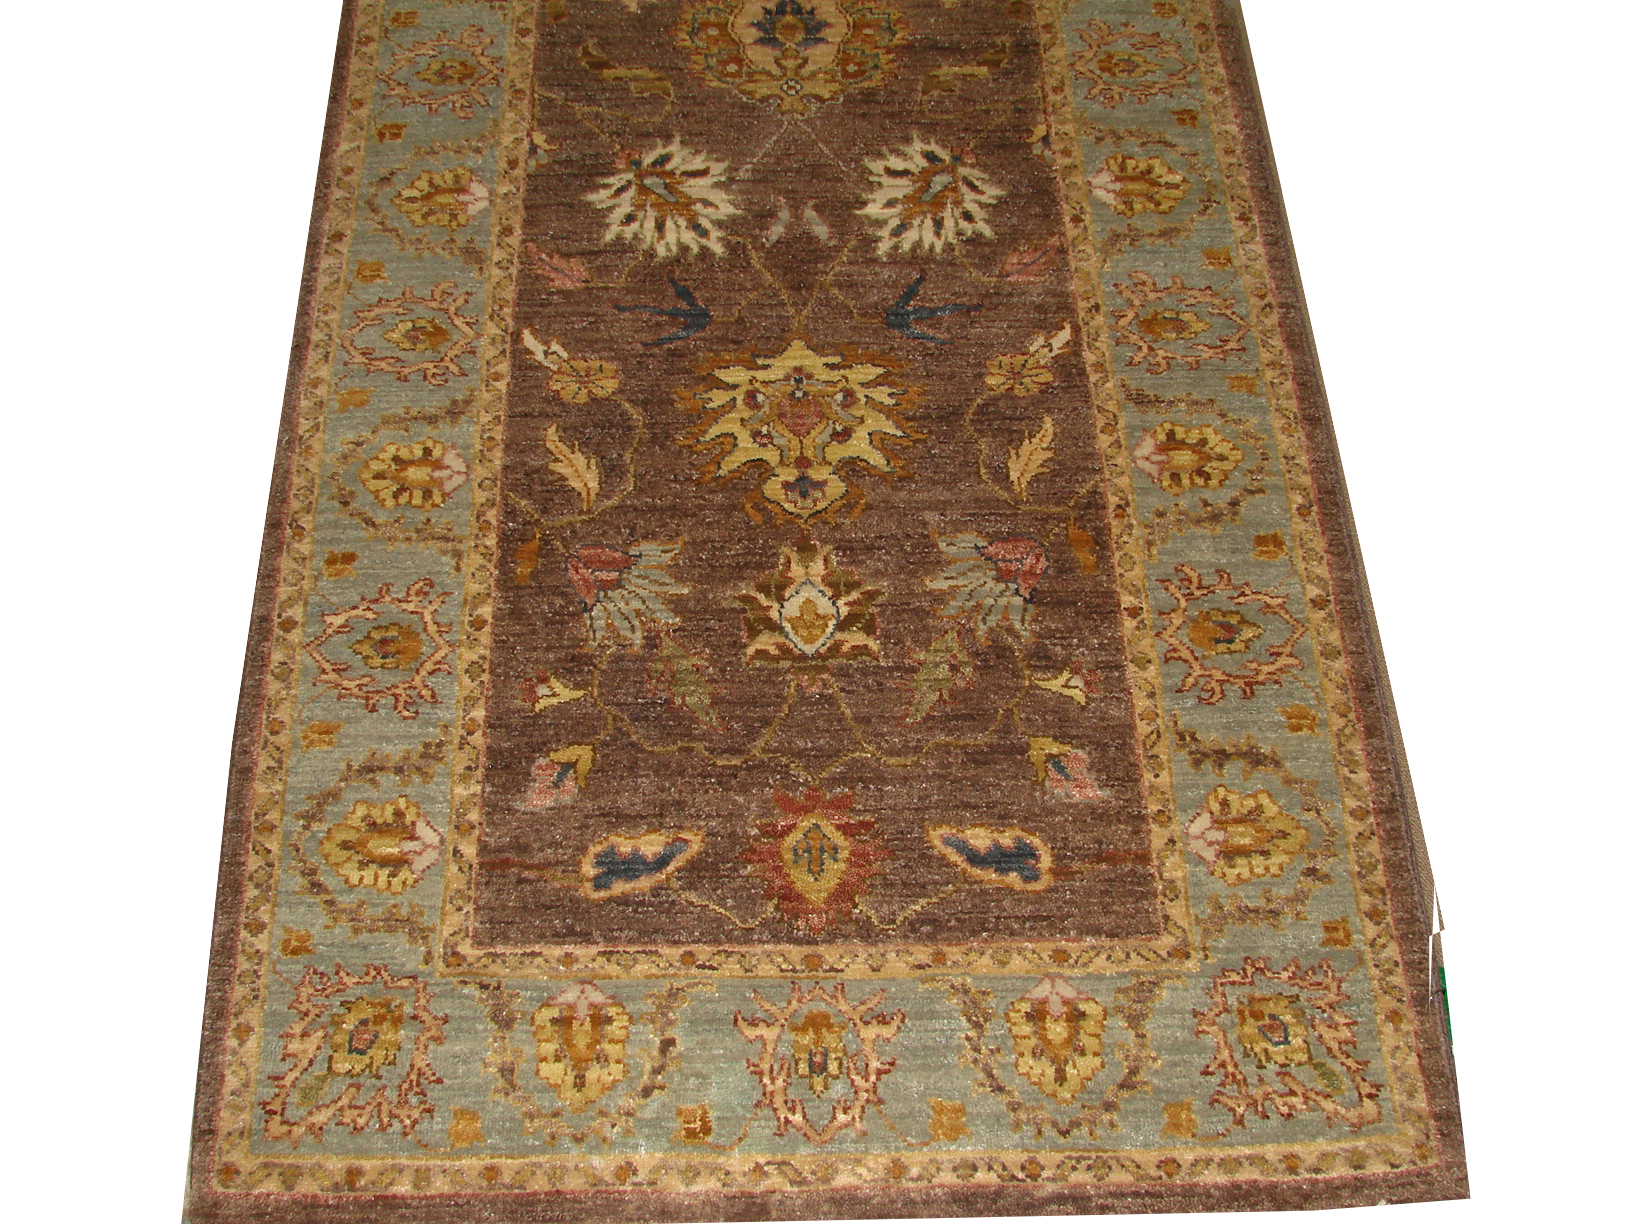 3x5 Traditional Hand Knotted Wool Area Rug - MR14657